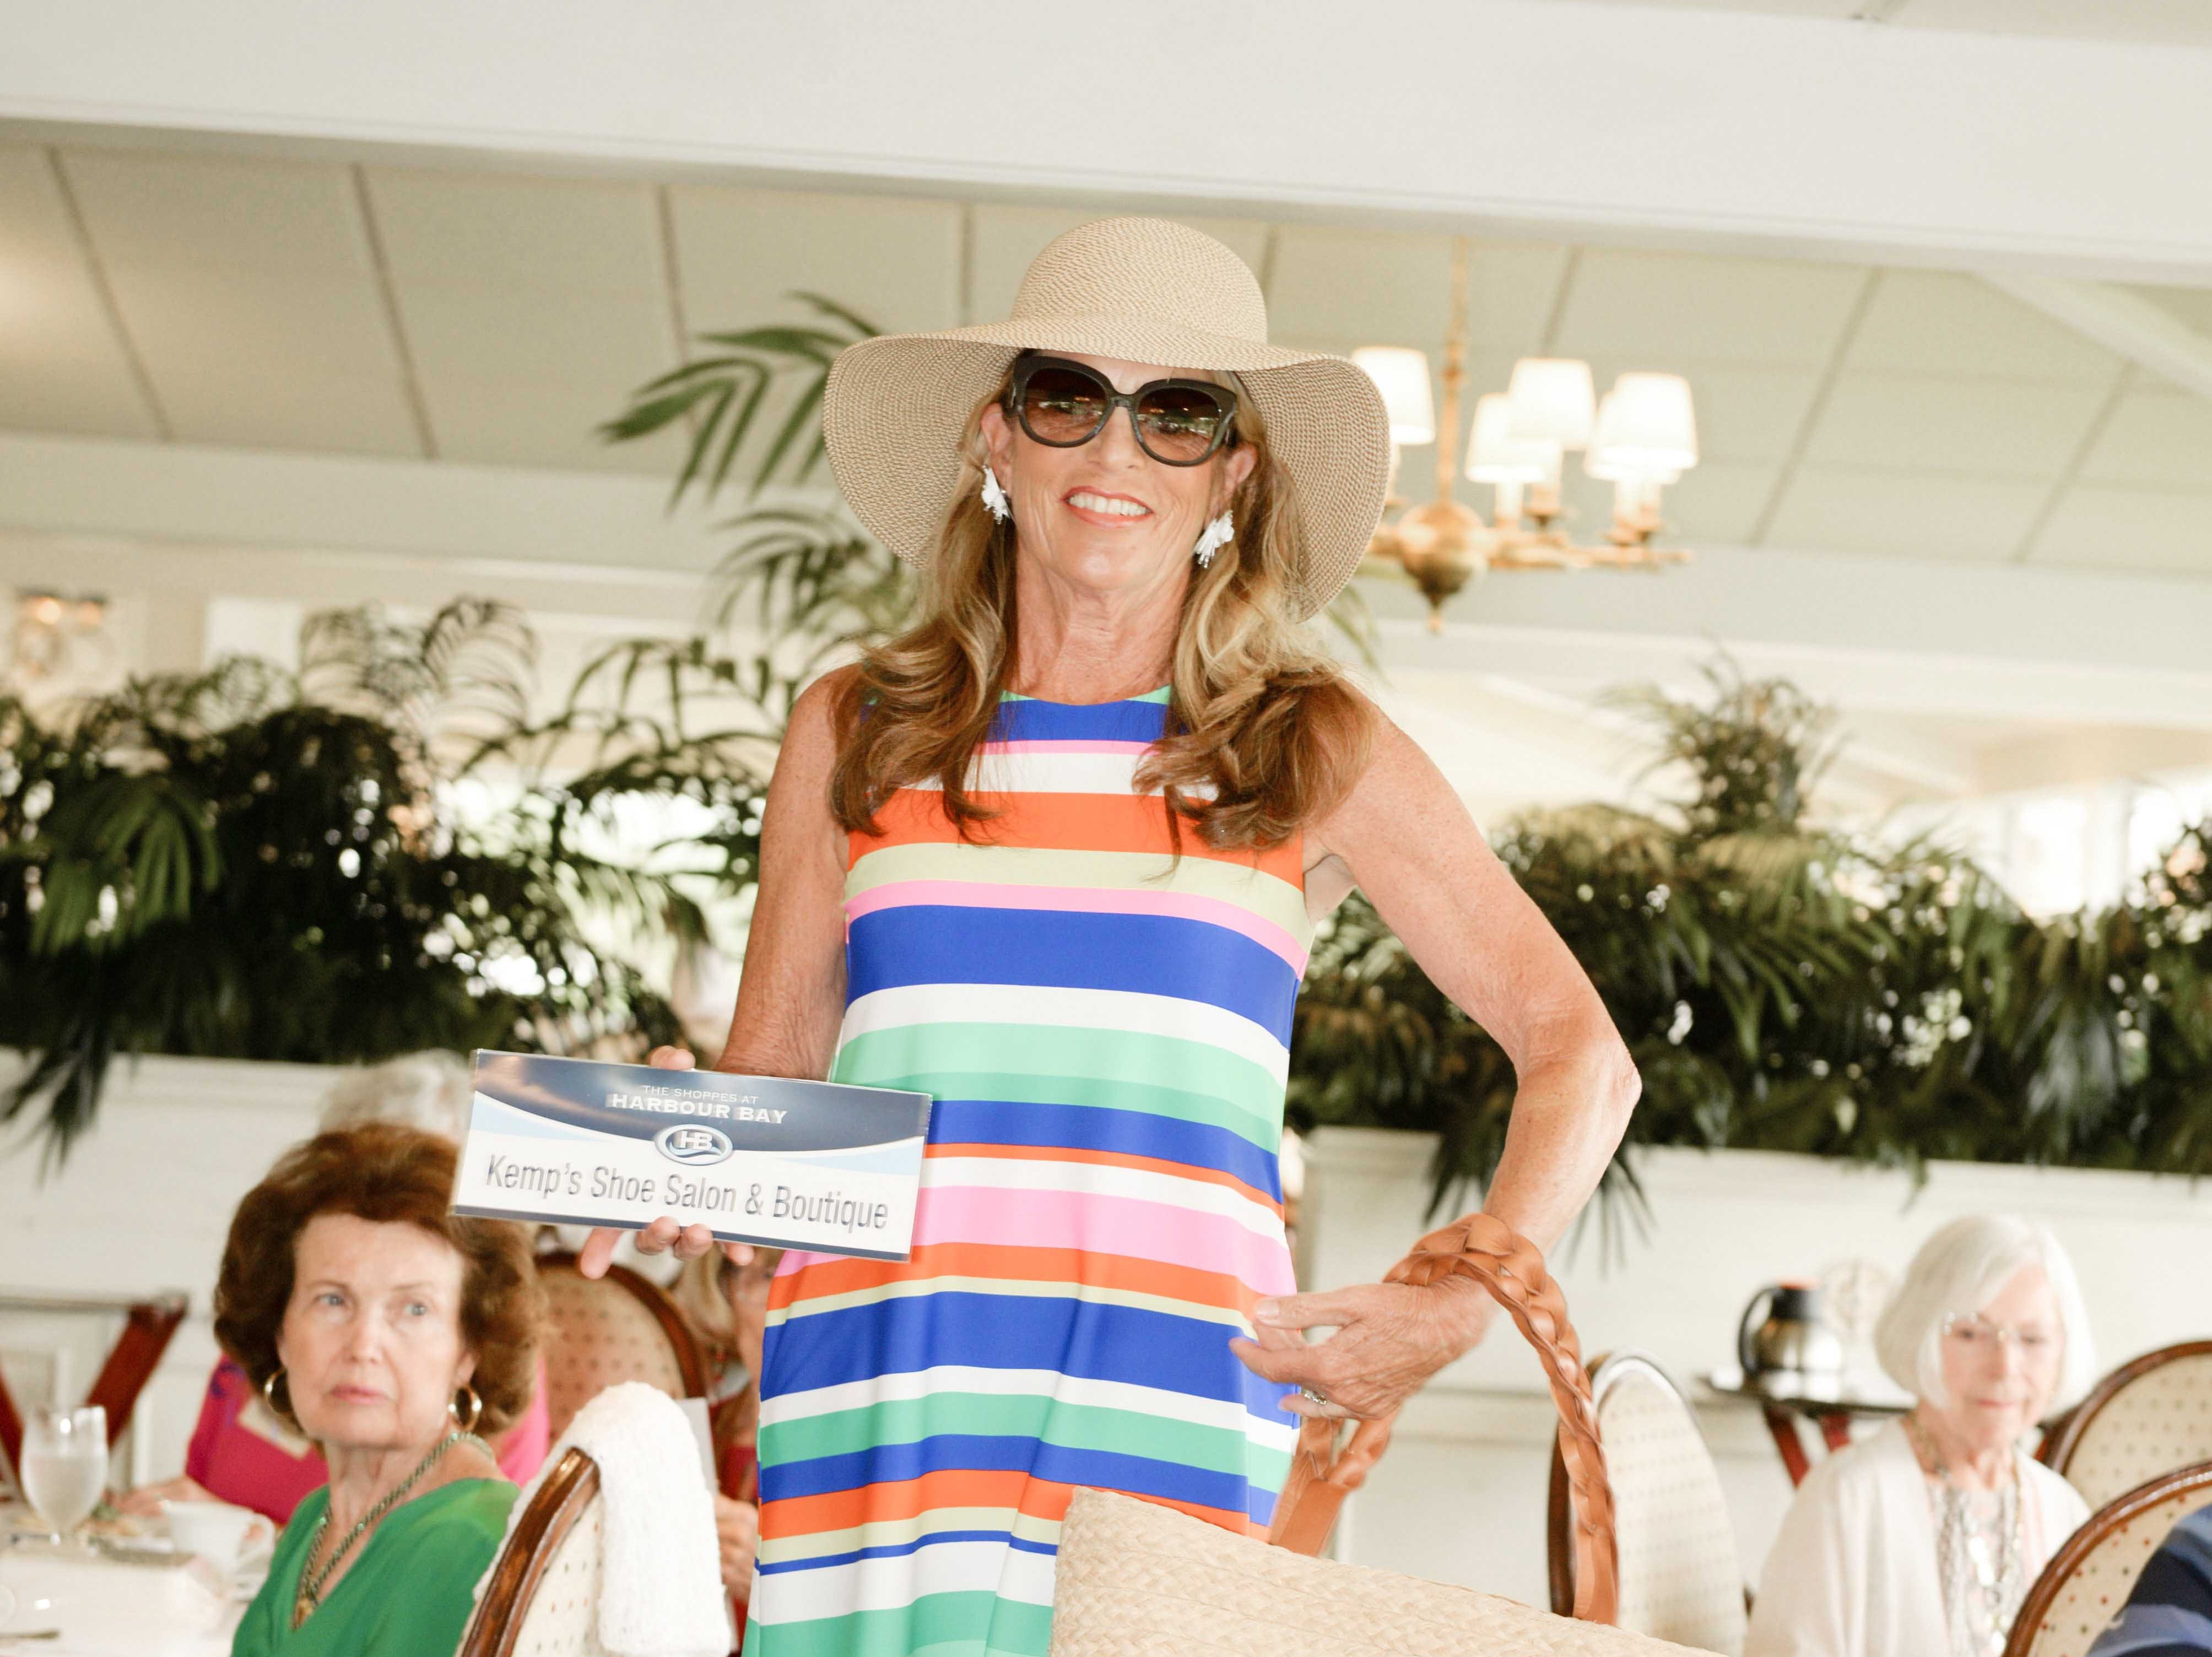 Jane Harlan models an outfit and shoes from Kemp's Shoe Salon & Boutique at the American Association of University Women Stuart Branch's luncheon and fashion show.